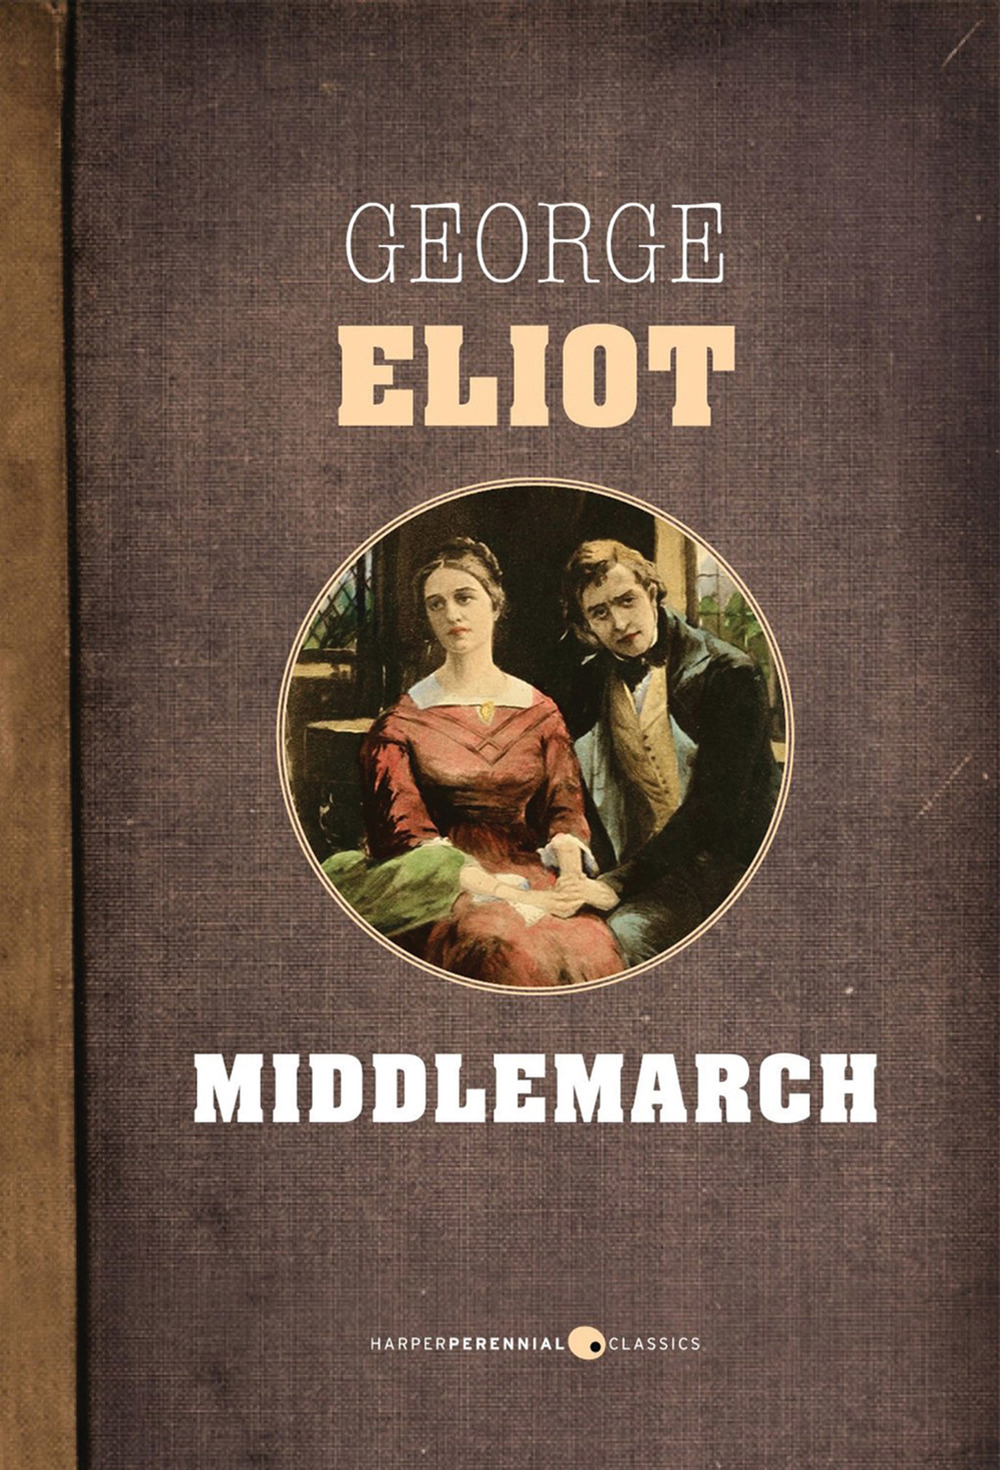 """At home, the designer loves to kick back with a book: """"My favorite is George Eliot's novel Middlemarch about maintaining one's humanity in the face of an increasingly technological world,""""."""